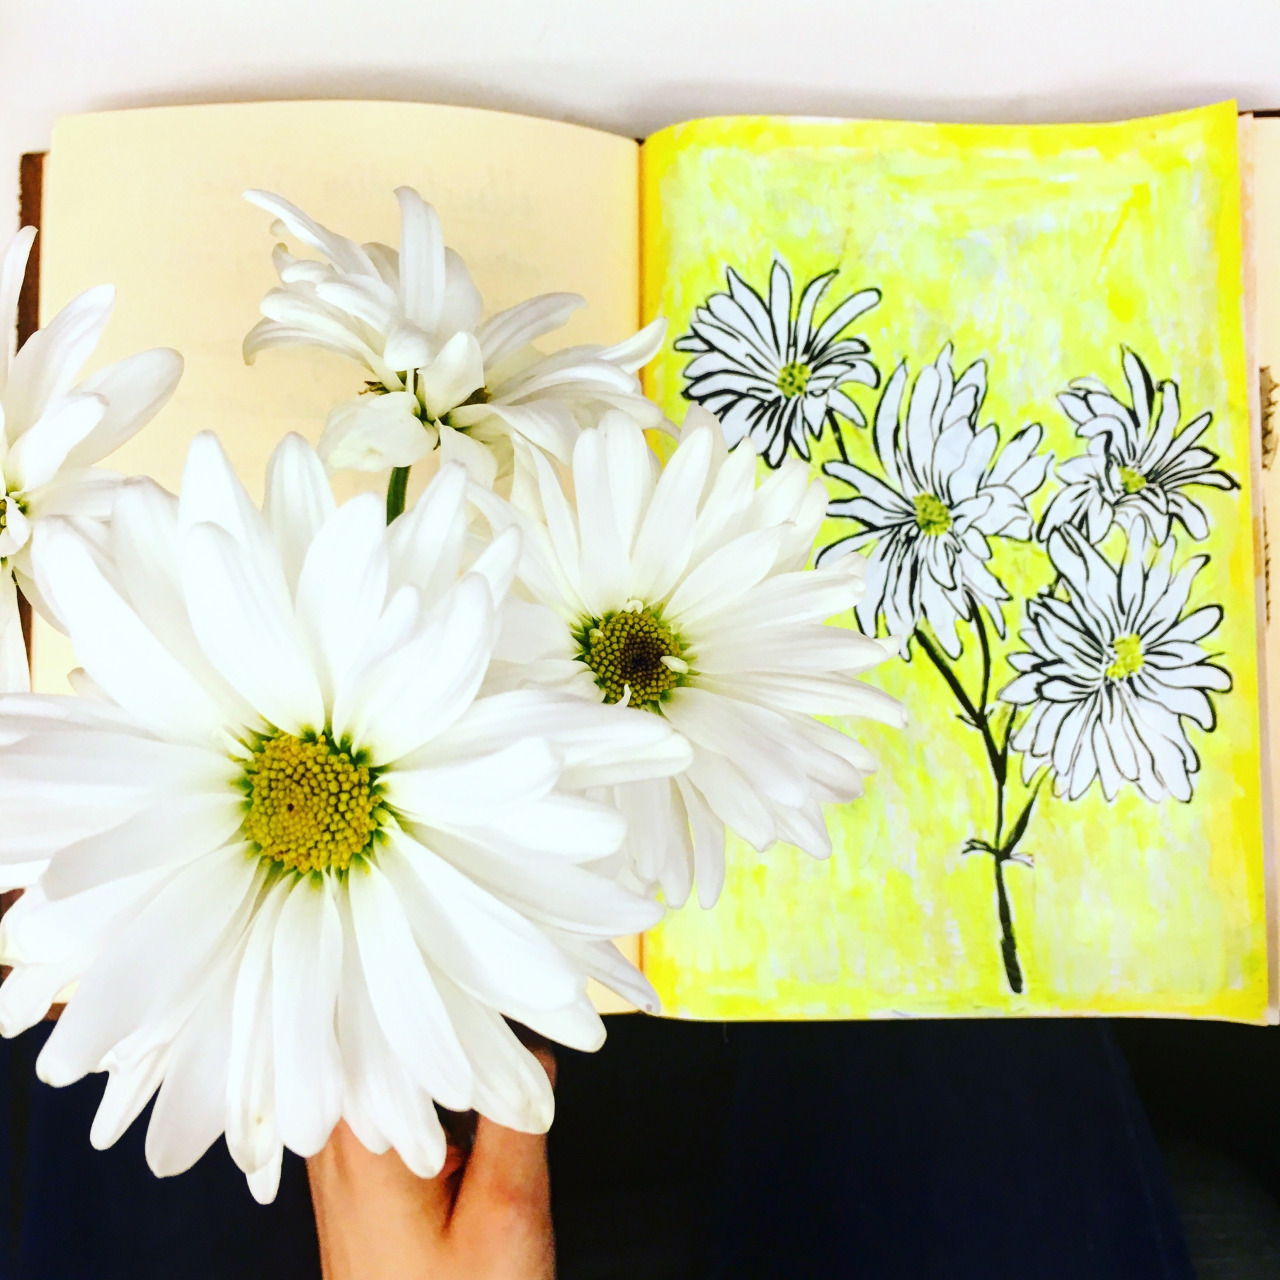 sketchbook with flowers